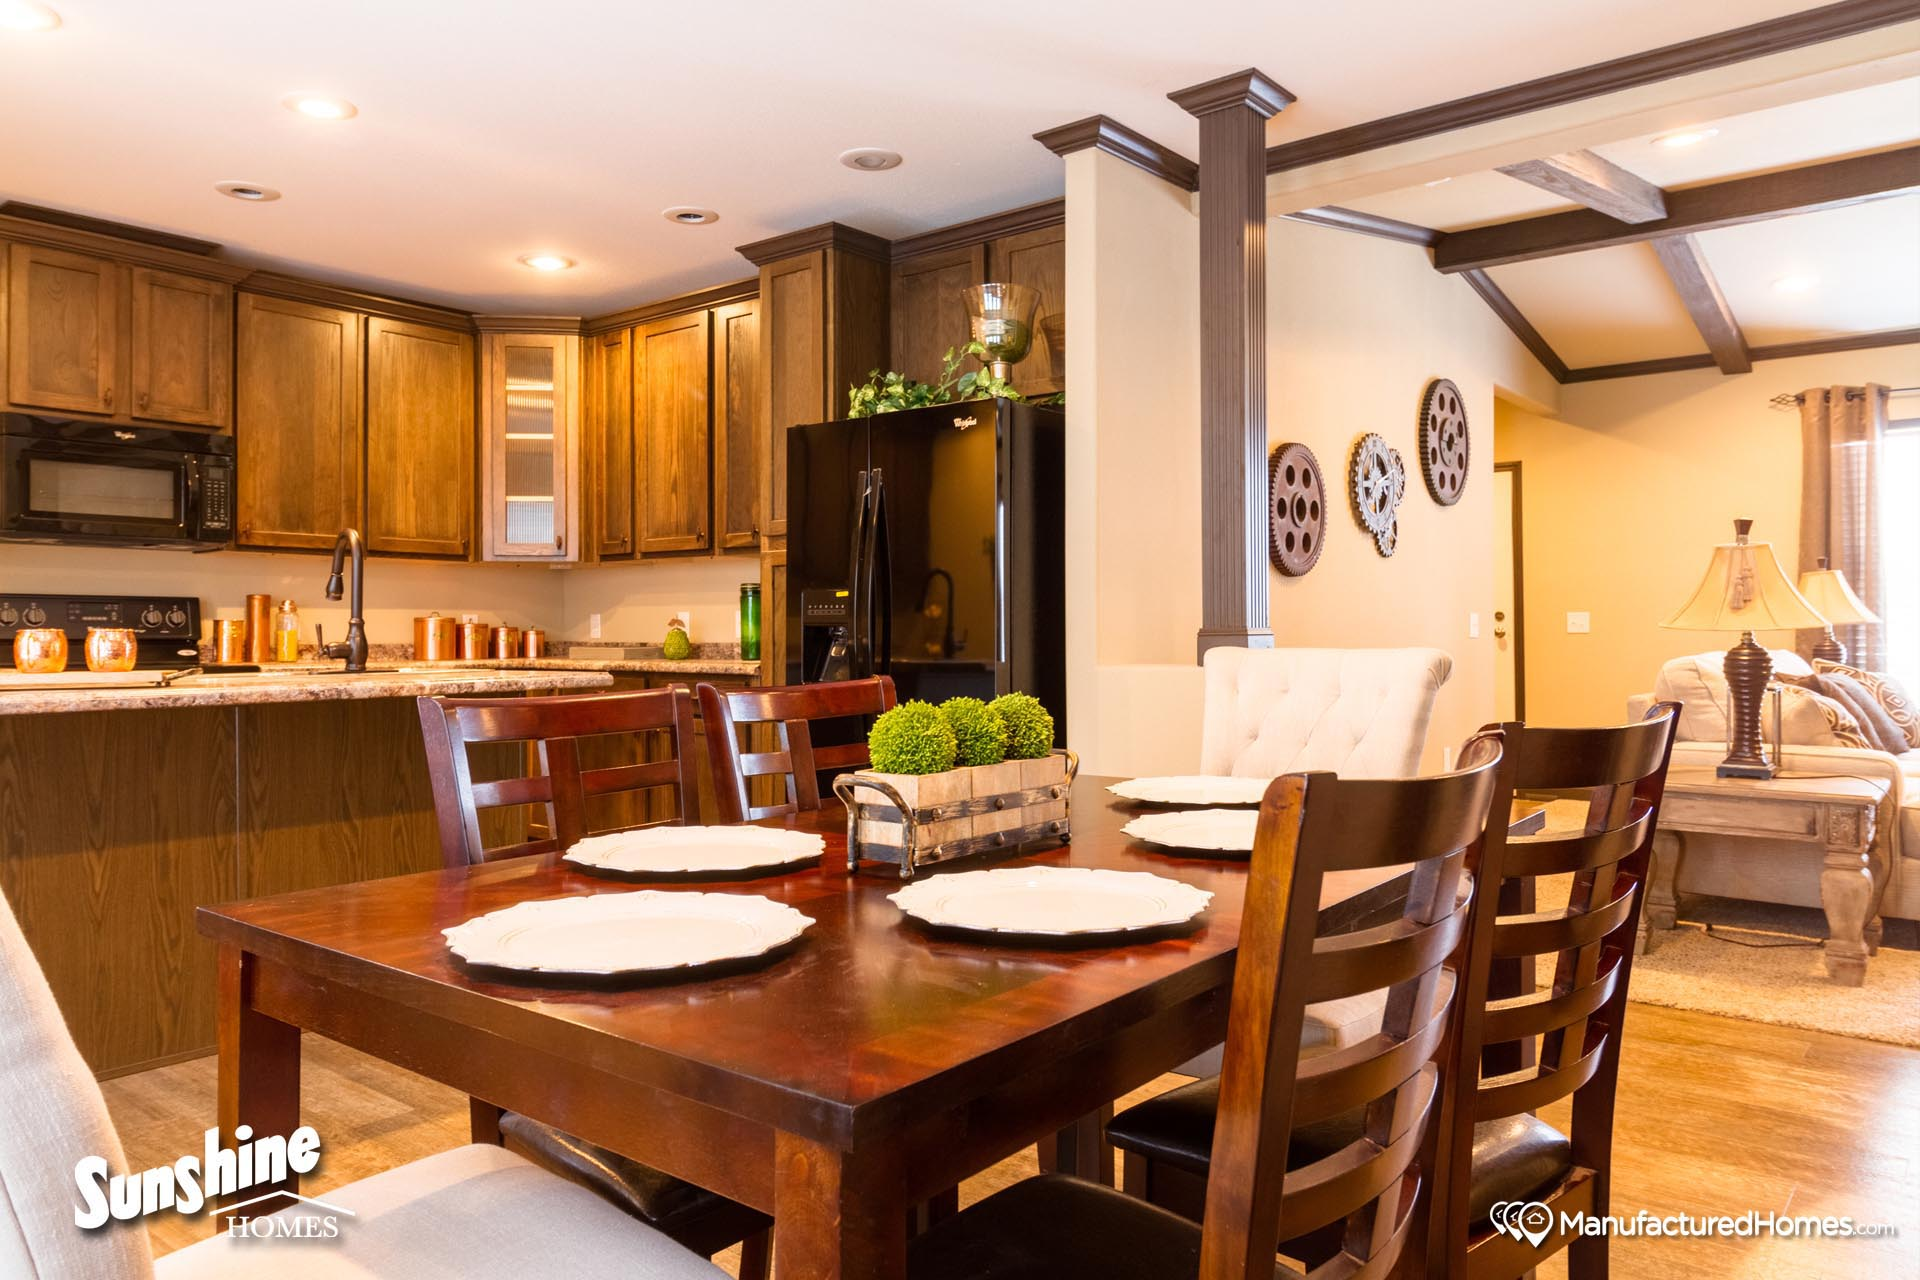 discover modular homes in denton tx manufactured home and with a strong focus on customer satisfaction and easing the process of buying a home our model is one that this industry has never seen before